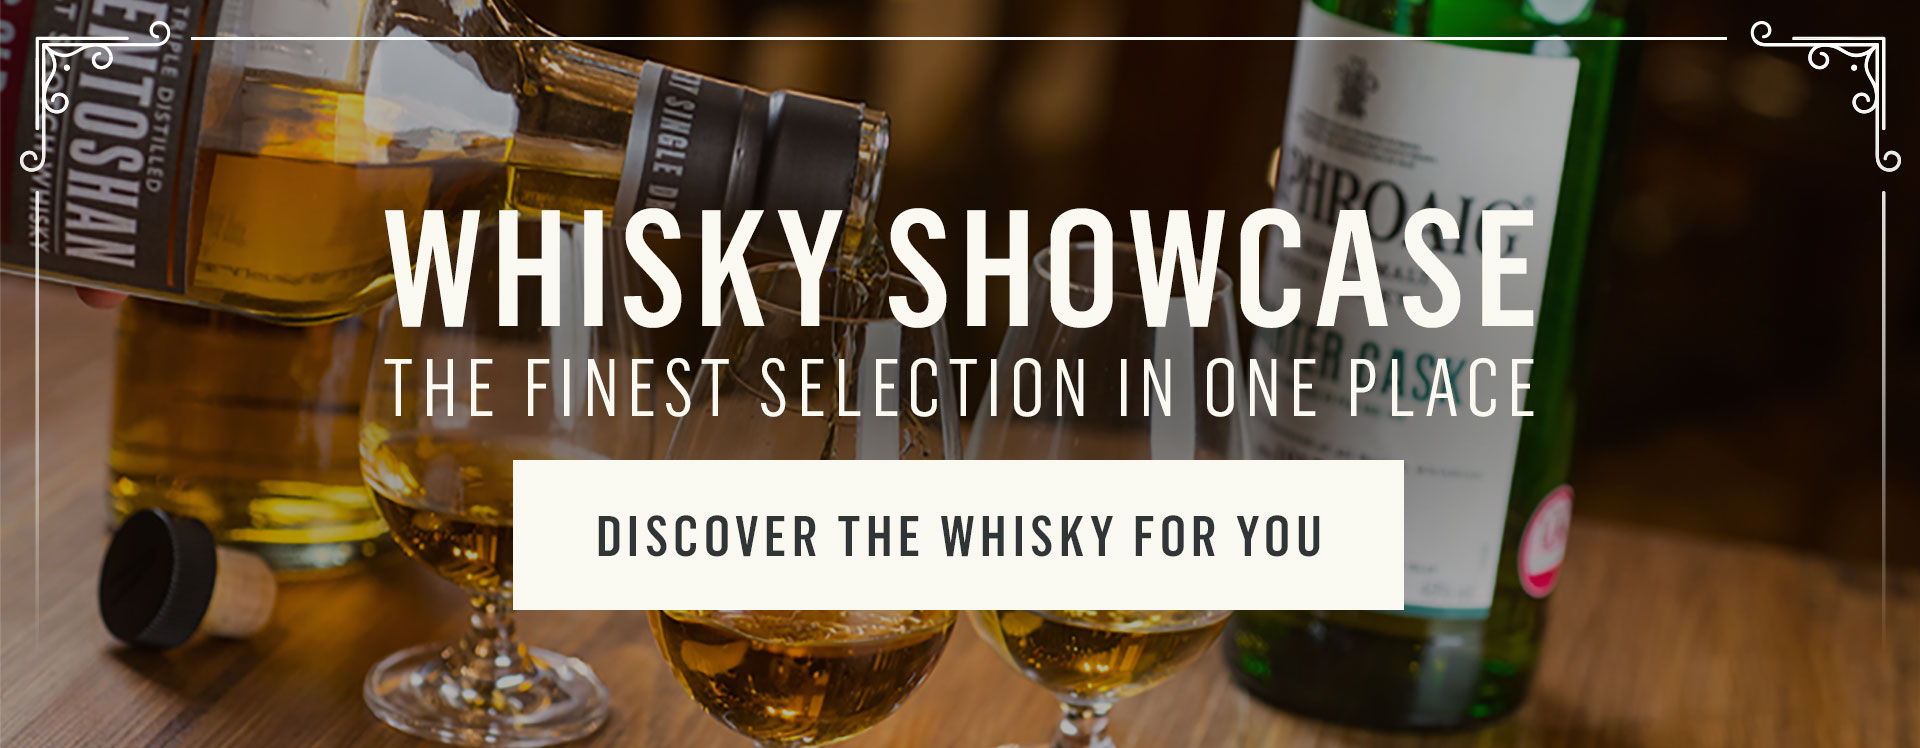 Whisky Showcase at The Bear and Staff in London